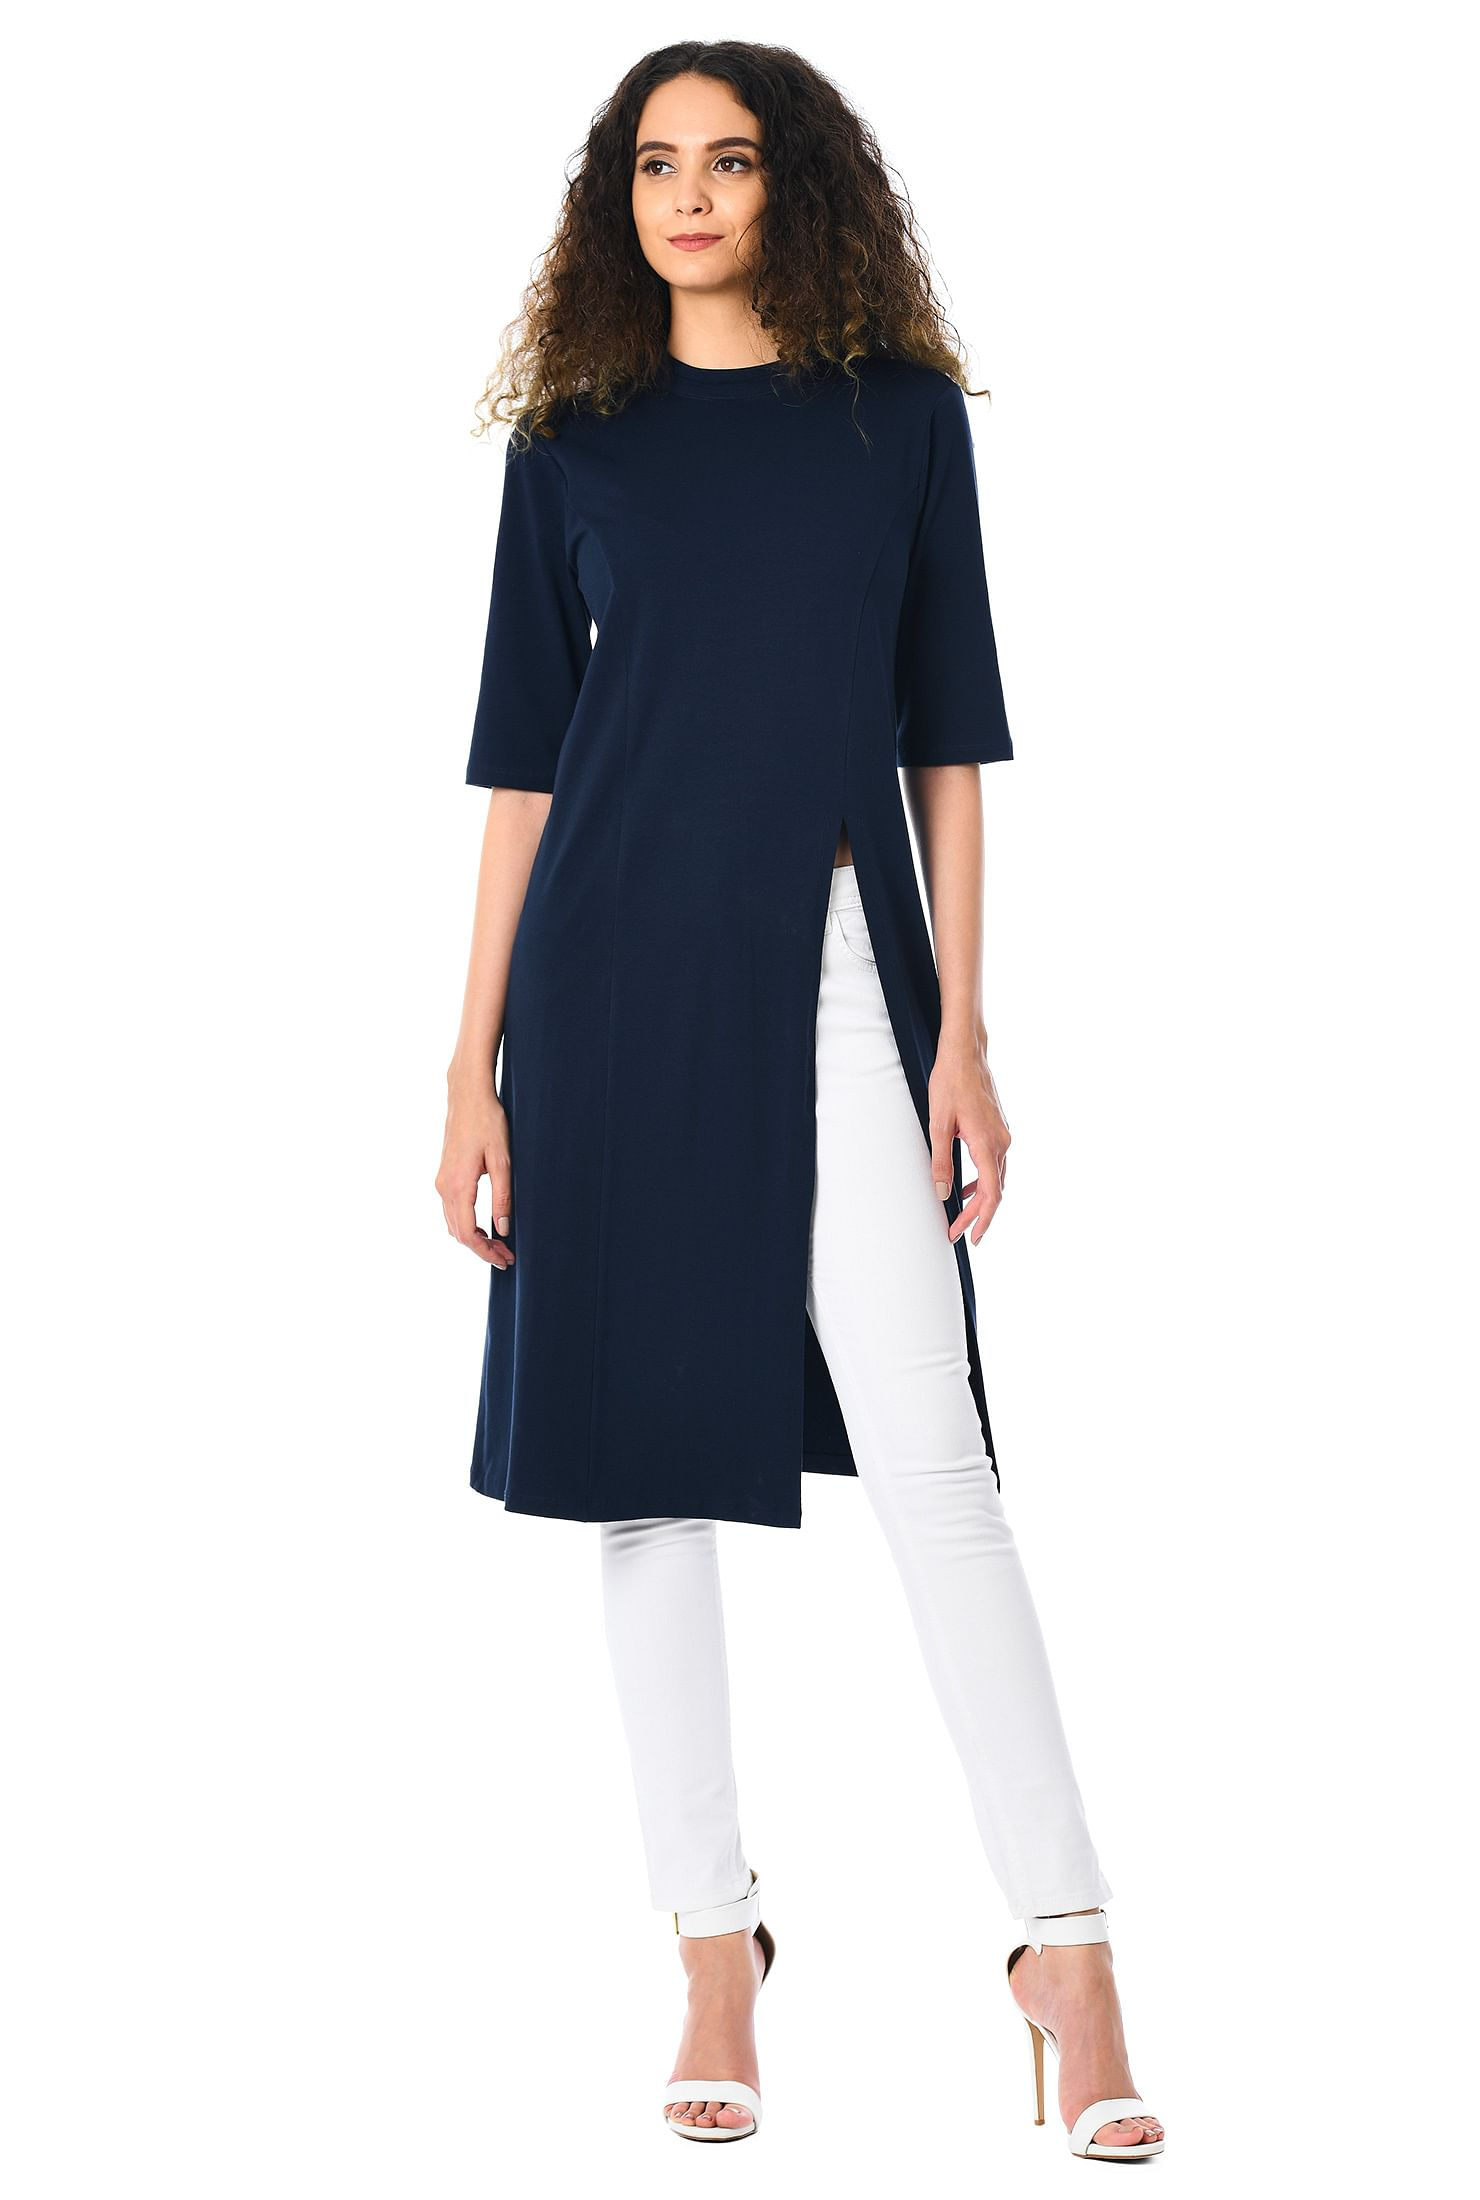 d20379ff319 banded high neck tops, below knee Length tunics, cotton knit tunic, cotton